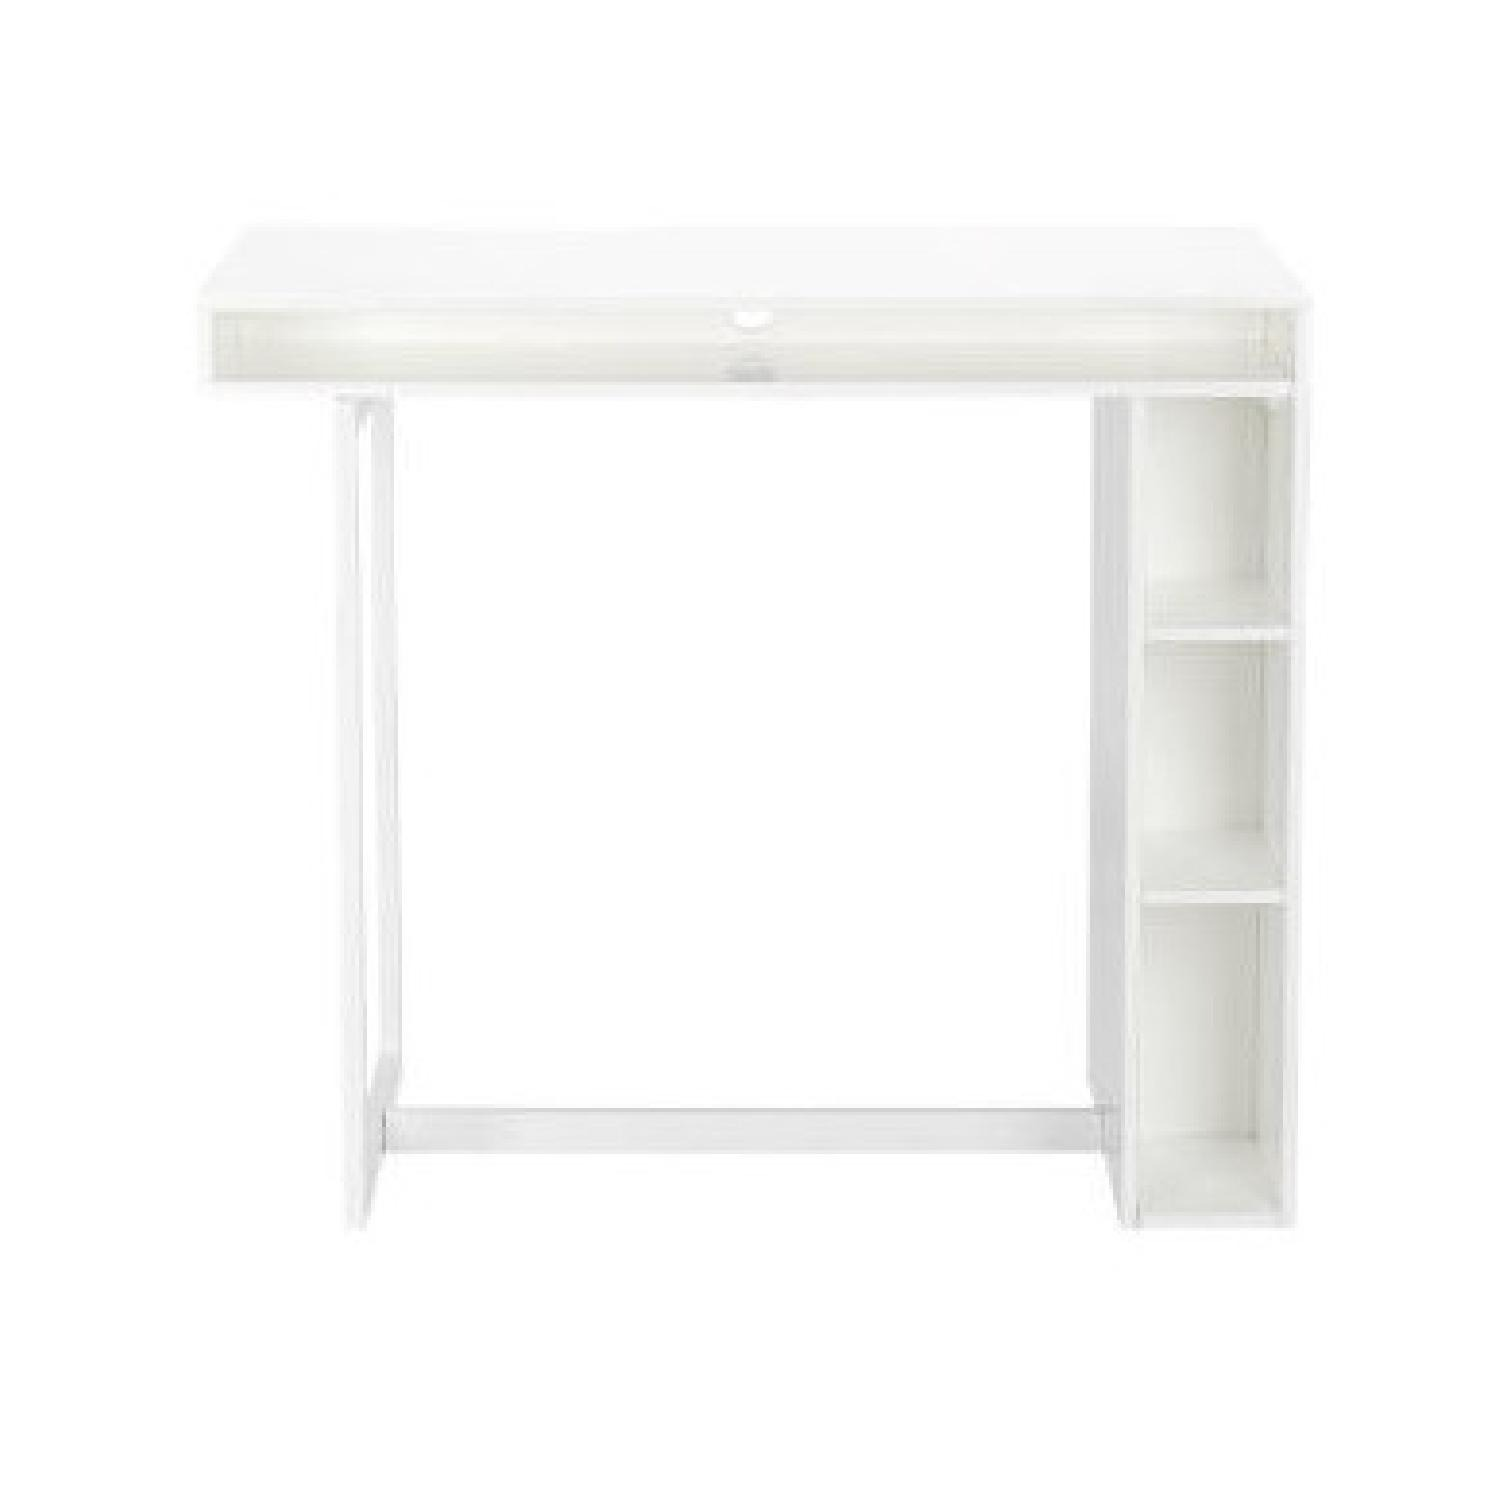 CB2 Public High Dining Table / Standing Desk - image-1